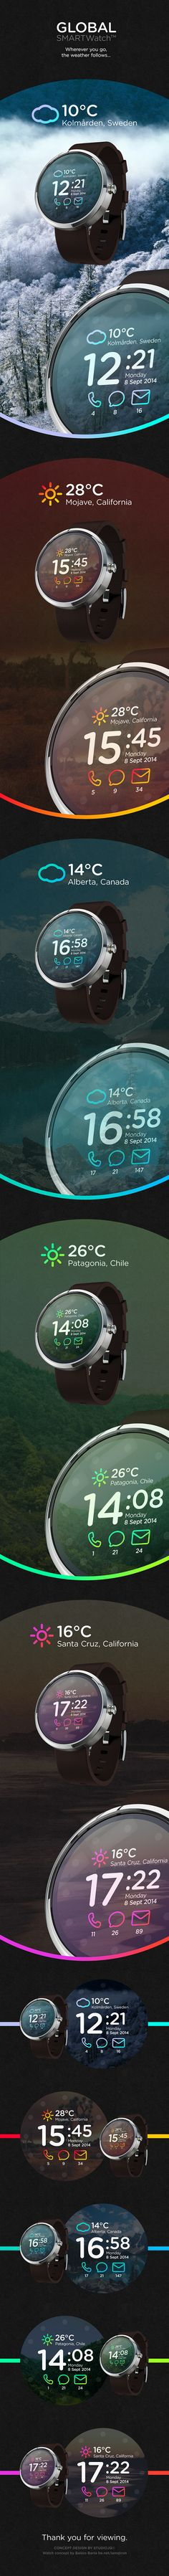 Global SMARTWatch™ // Concept on Behance